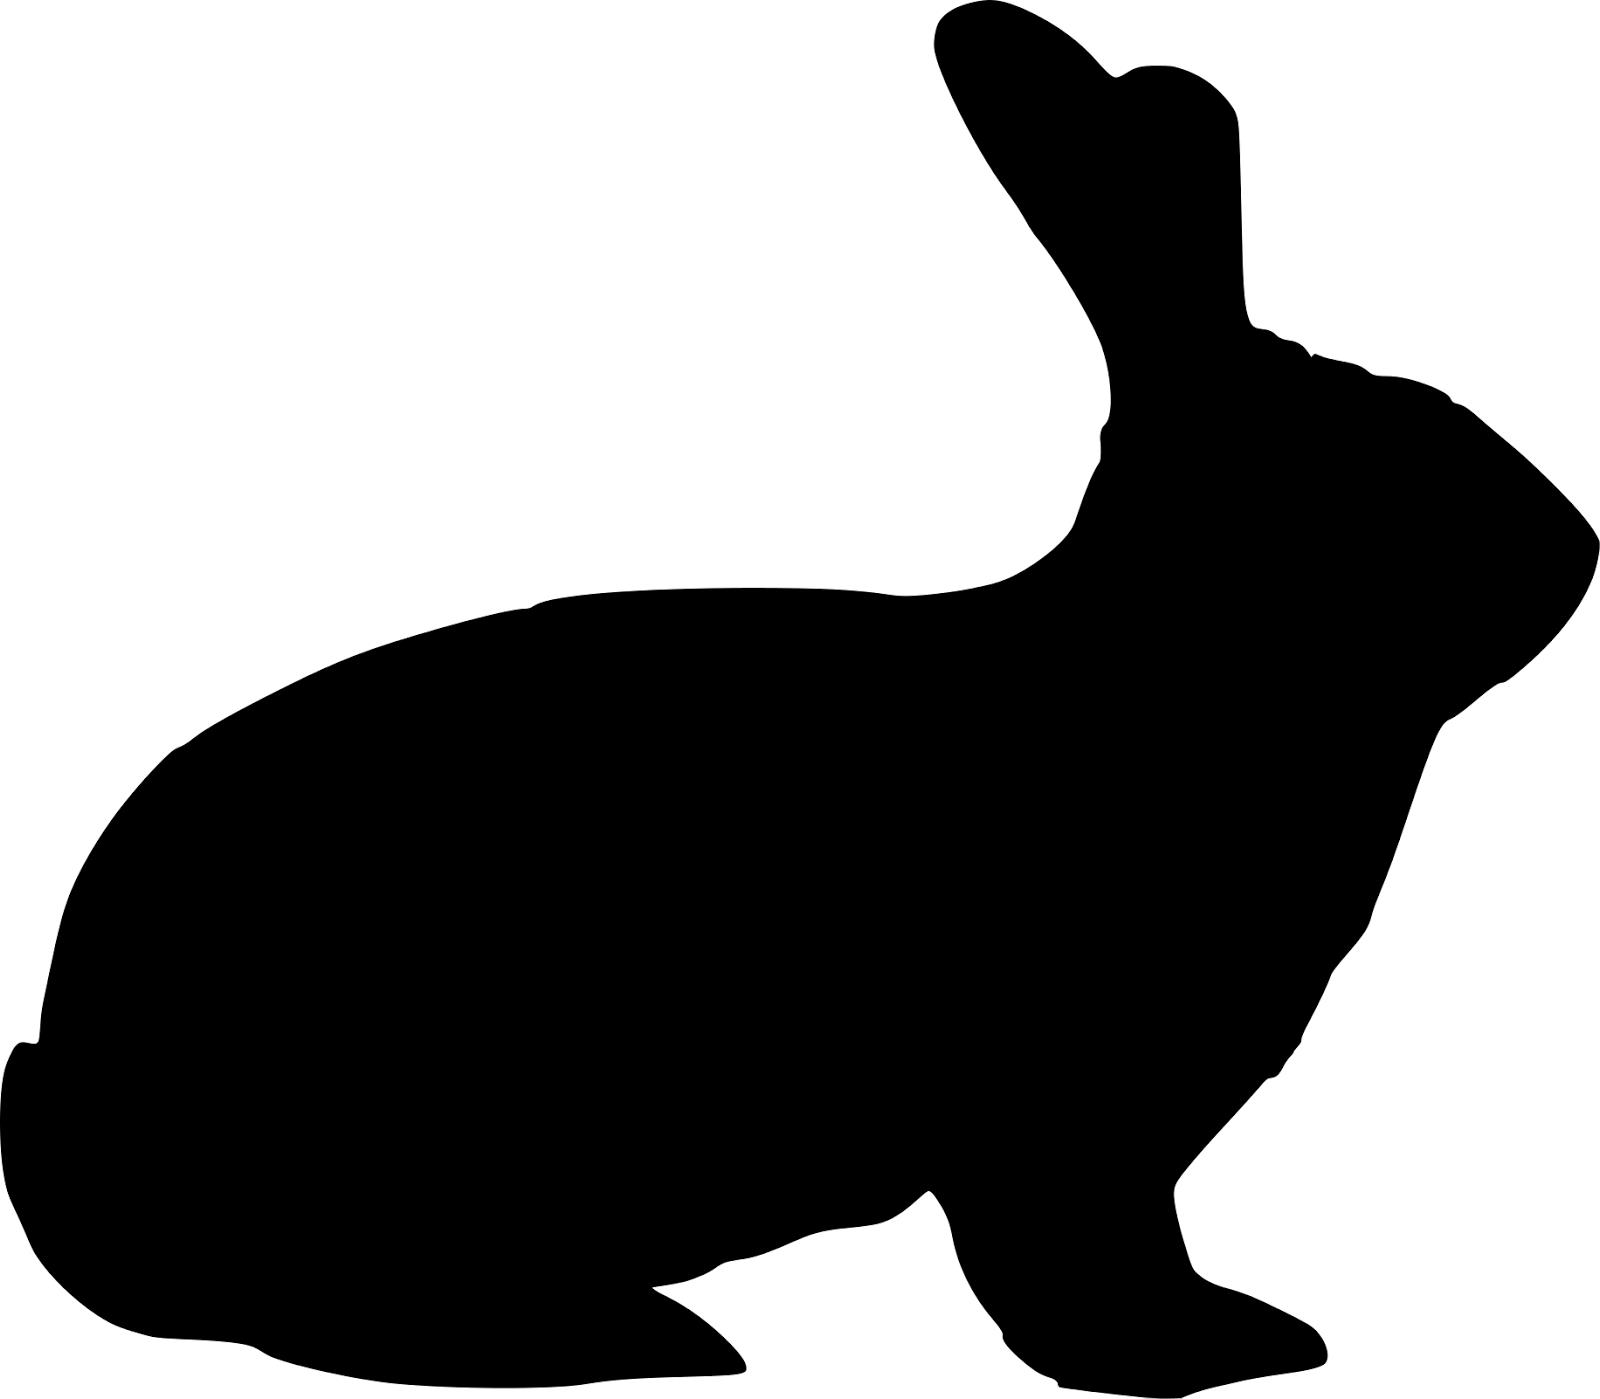 1600x1399 Easter Bunny Silhouette Printable Hd Easter Images